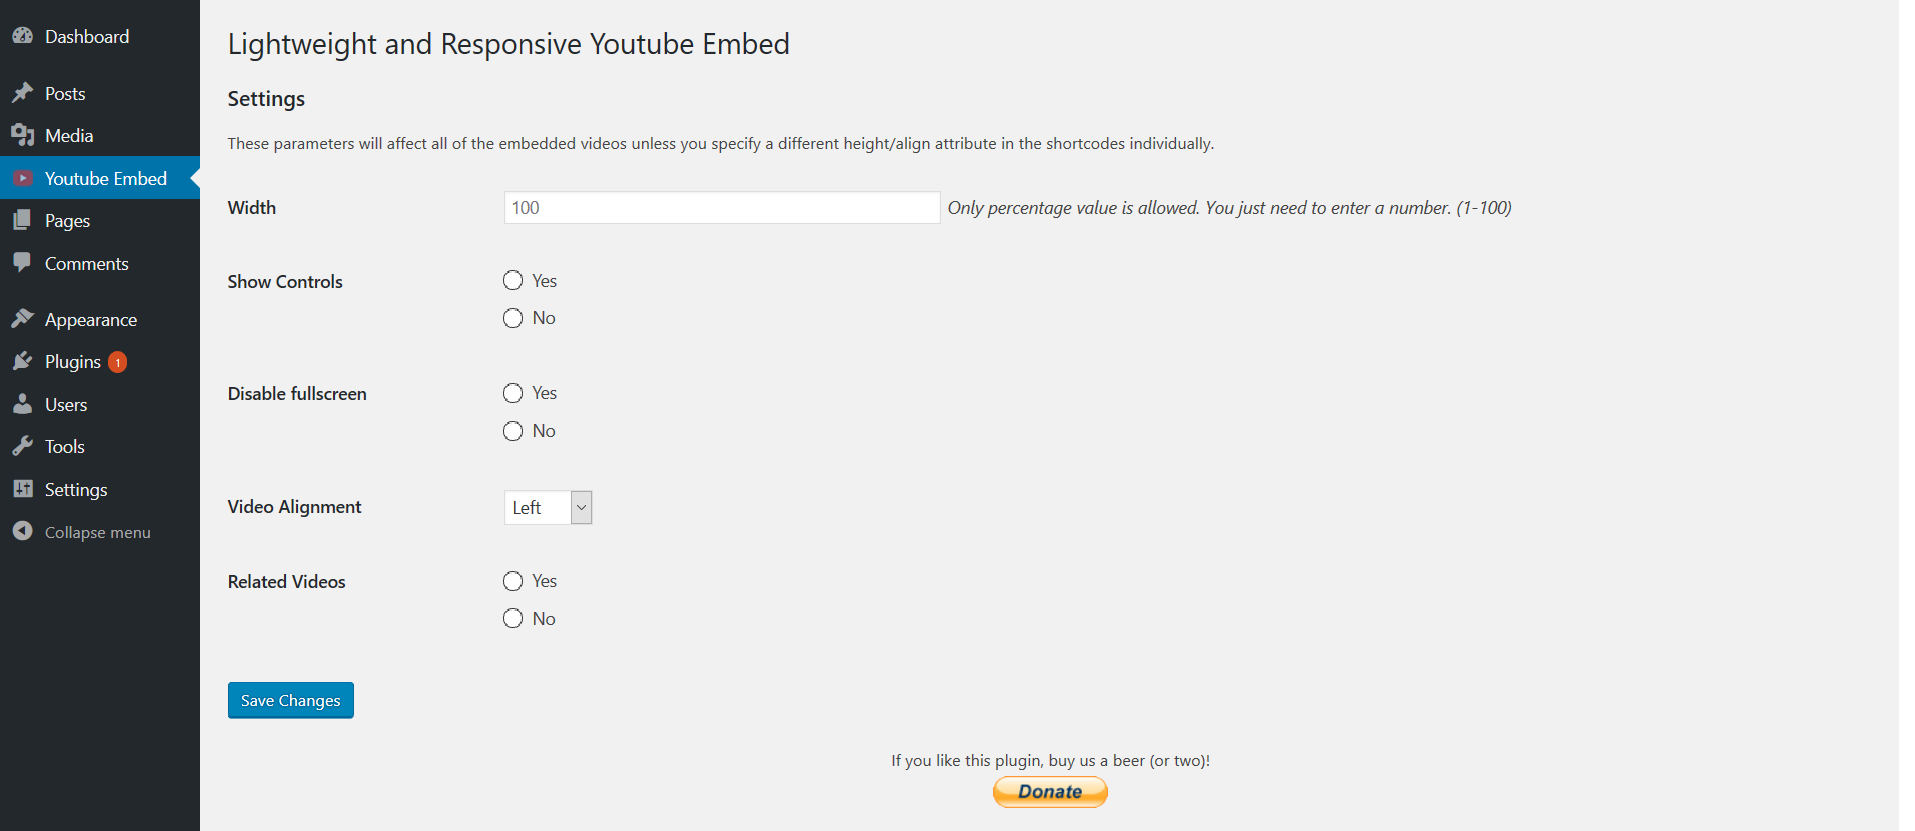 Lightweight and Responsive Youtube Embed